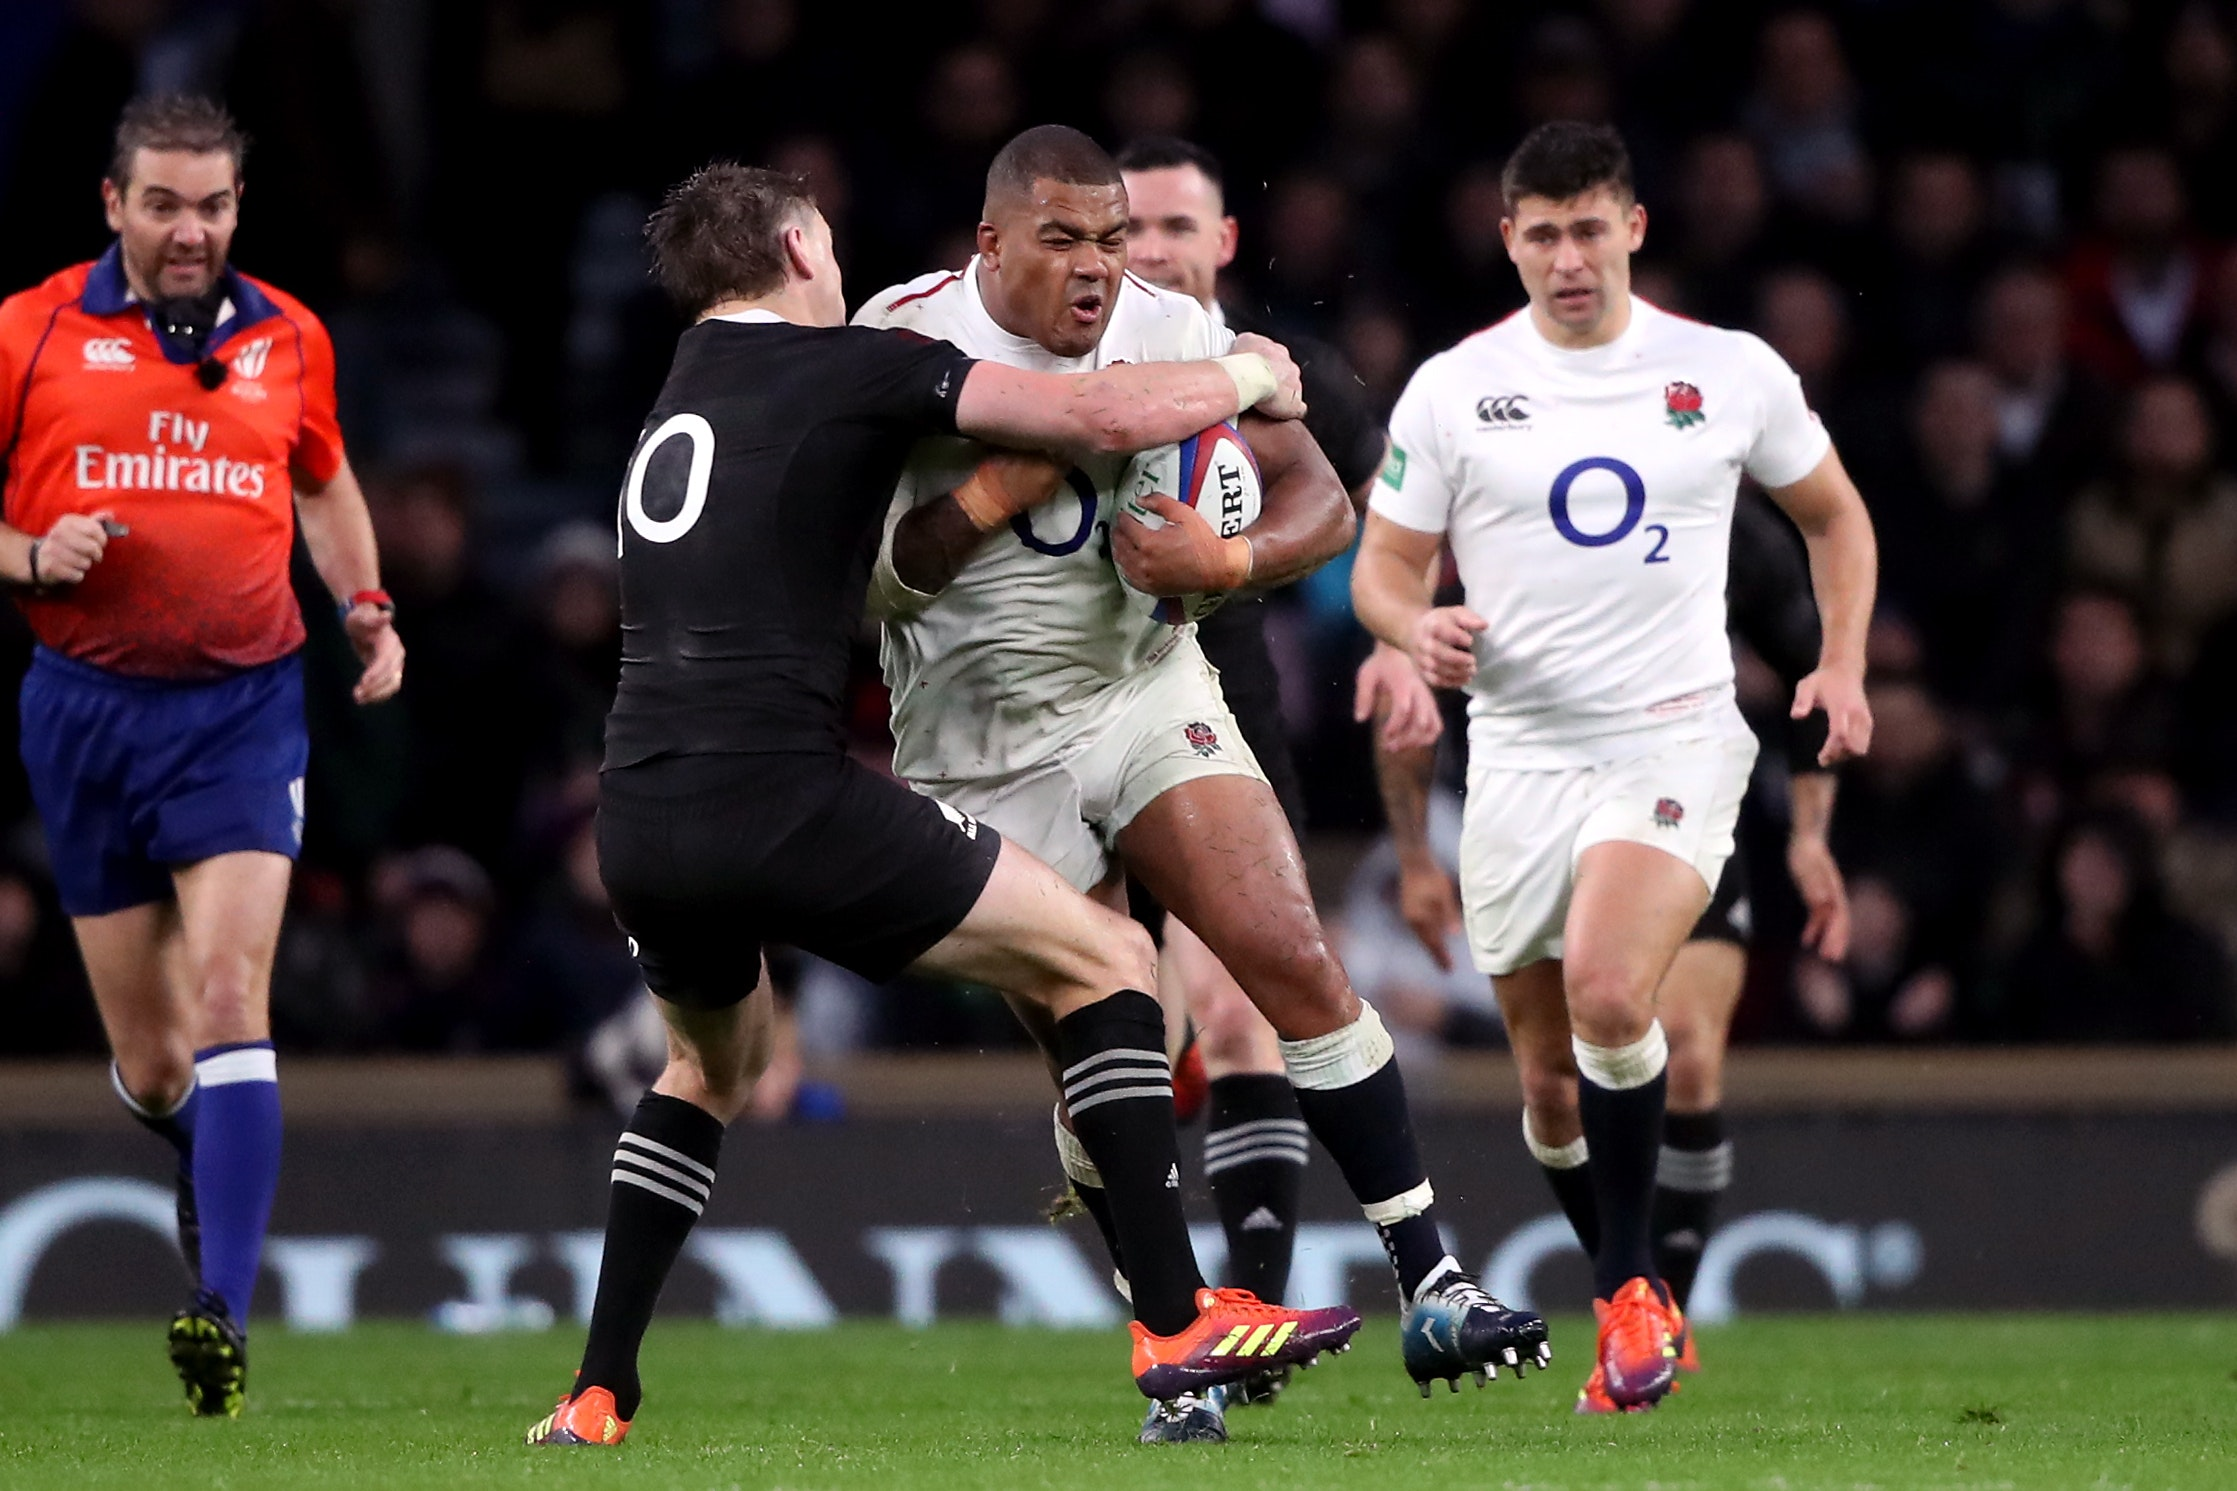 Kyle Sinckler has welcome Eddie Jones' call to smash Japan